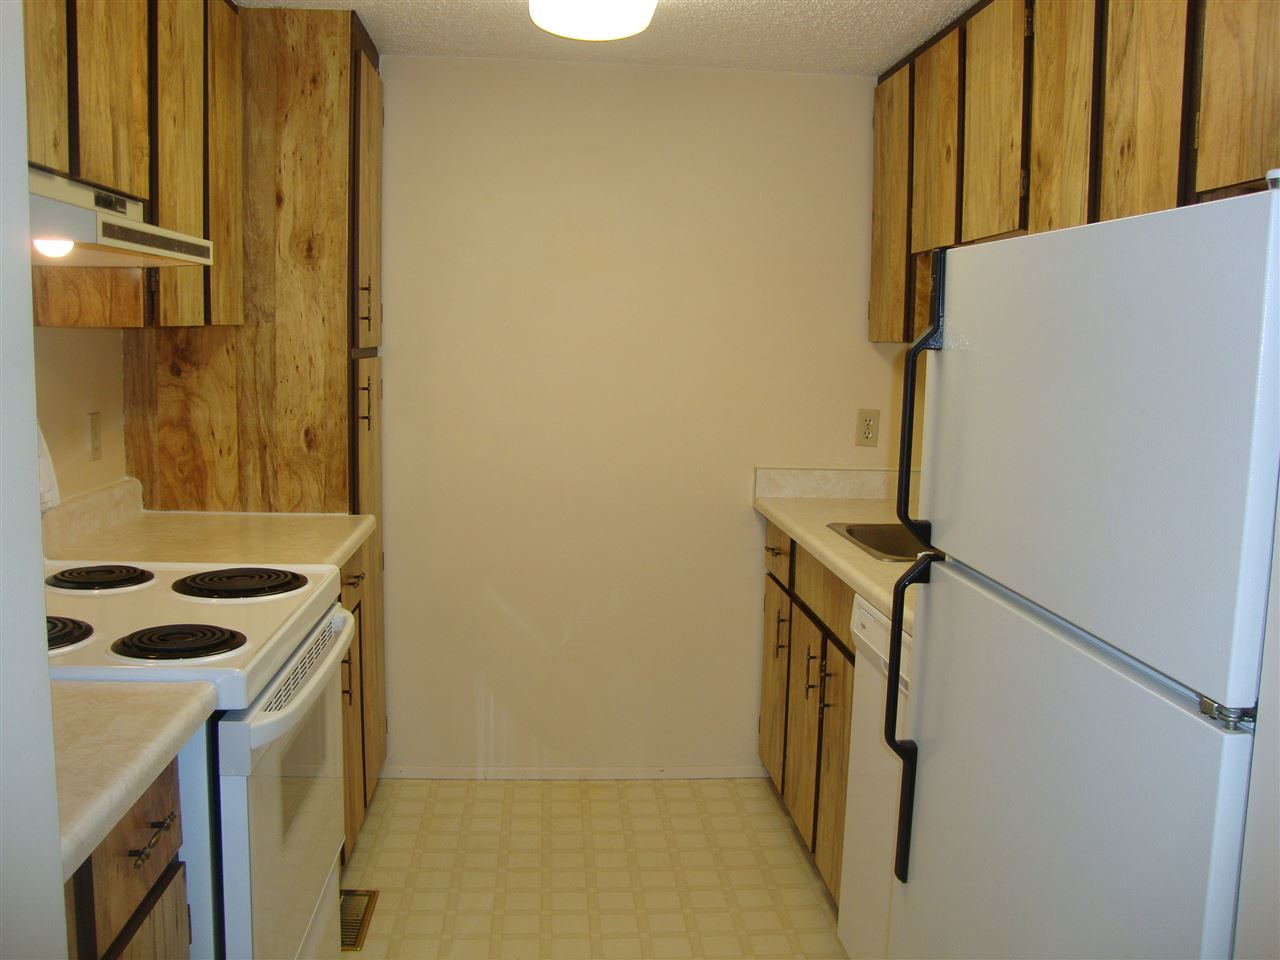 Kitchen comes with fridge, stove and brand new built in dishwasher.